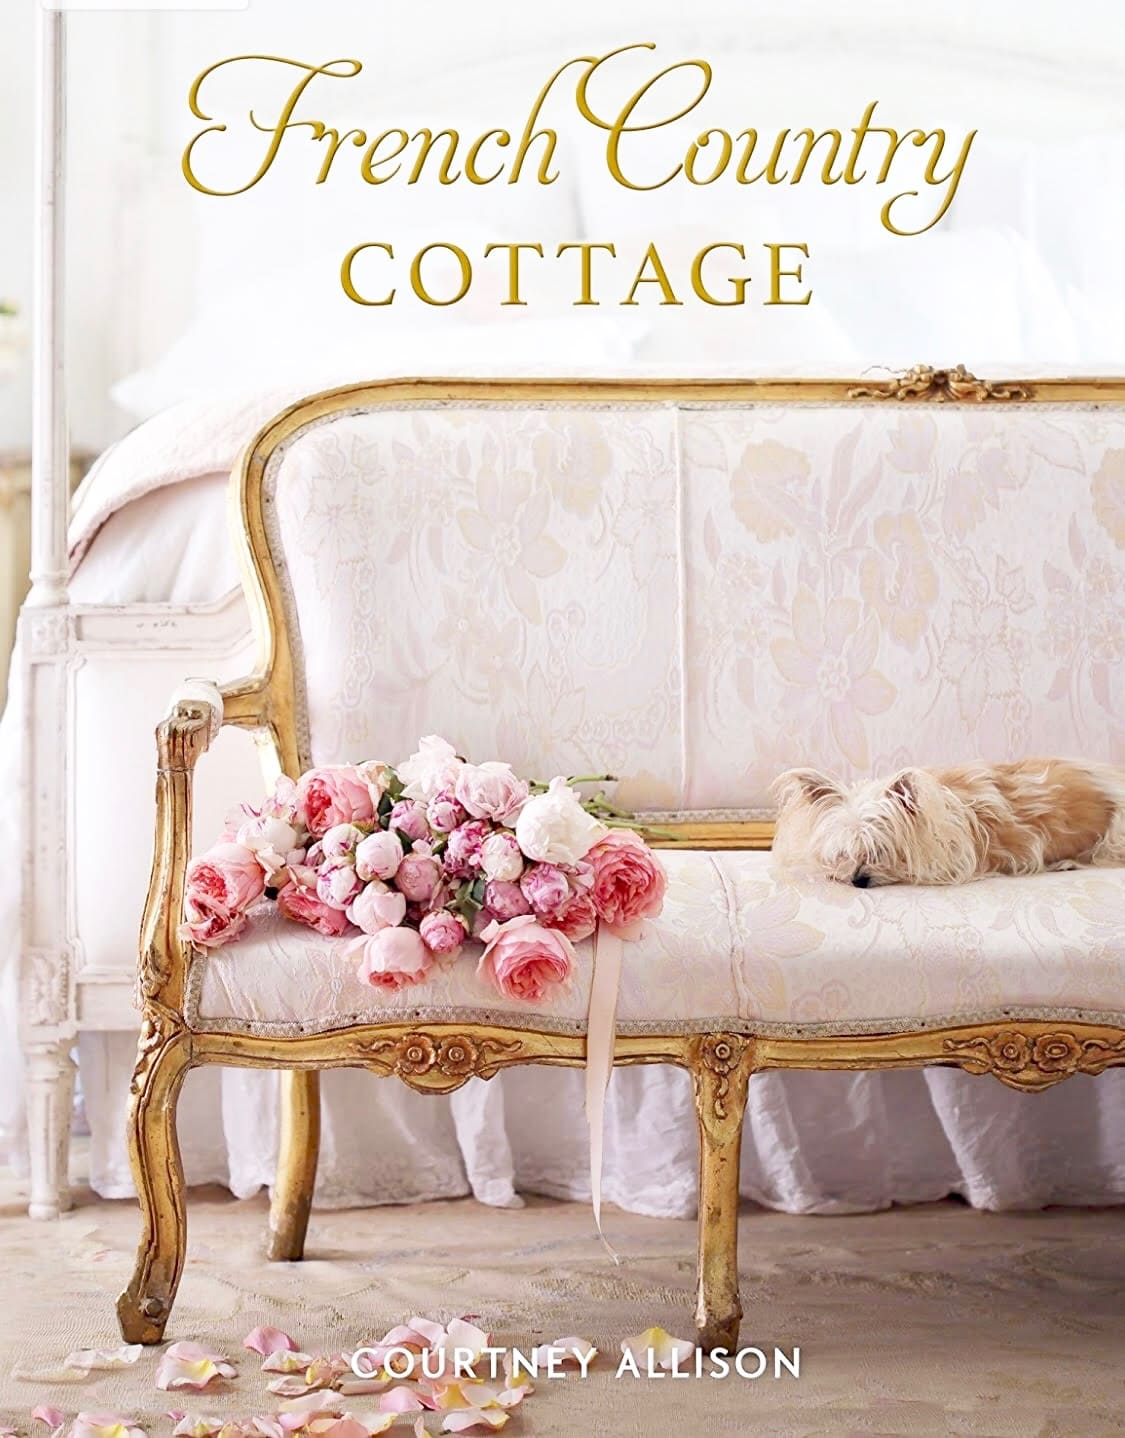 French Country Cottage: An Exquisite New Book About a Breathtaking French Cottage